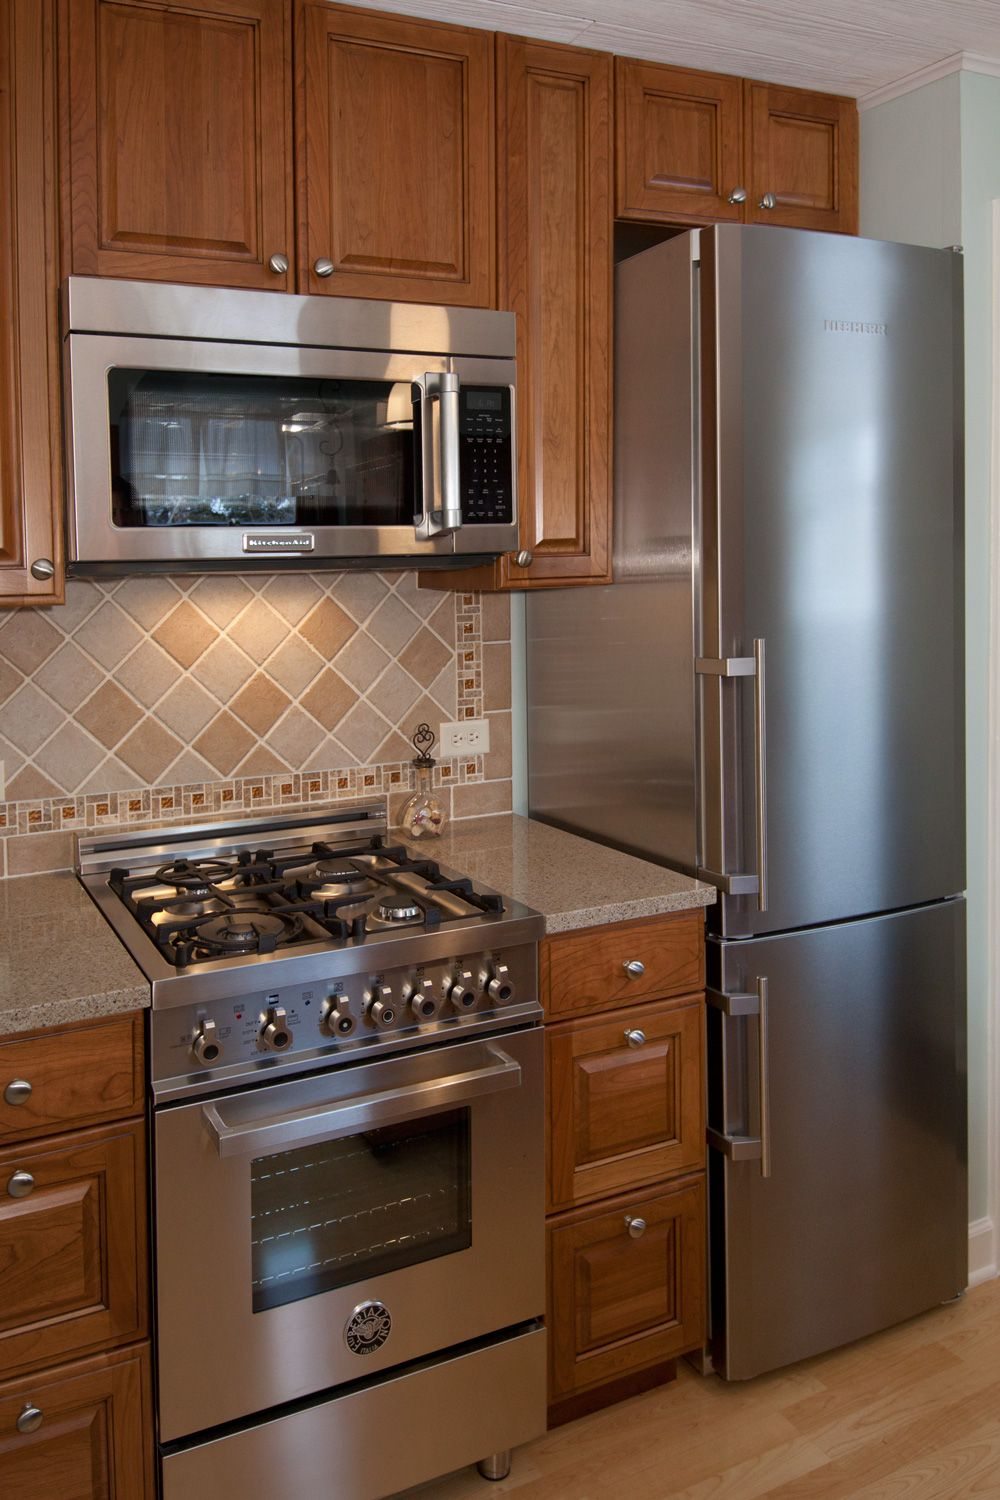 Gorgeous Kitchen Remodel Ideas For Small Kitchen With Small Kitchen Remodel Elmwood Park Il Be In 2020 Kitchen Remodel Small Budget Kitchen Remodel Kitchen Room Design